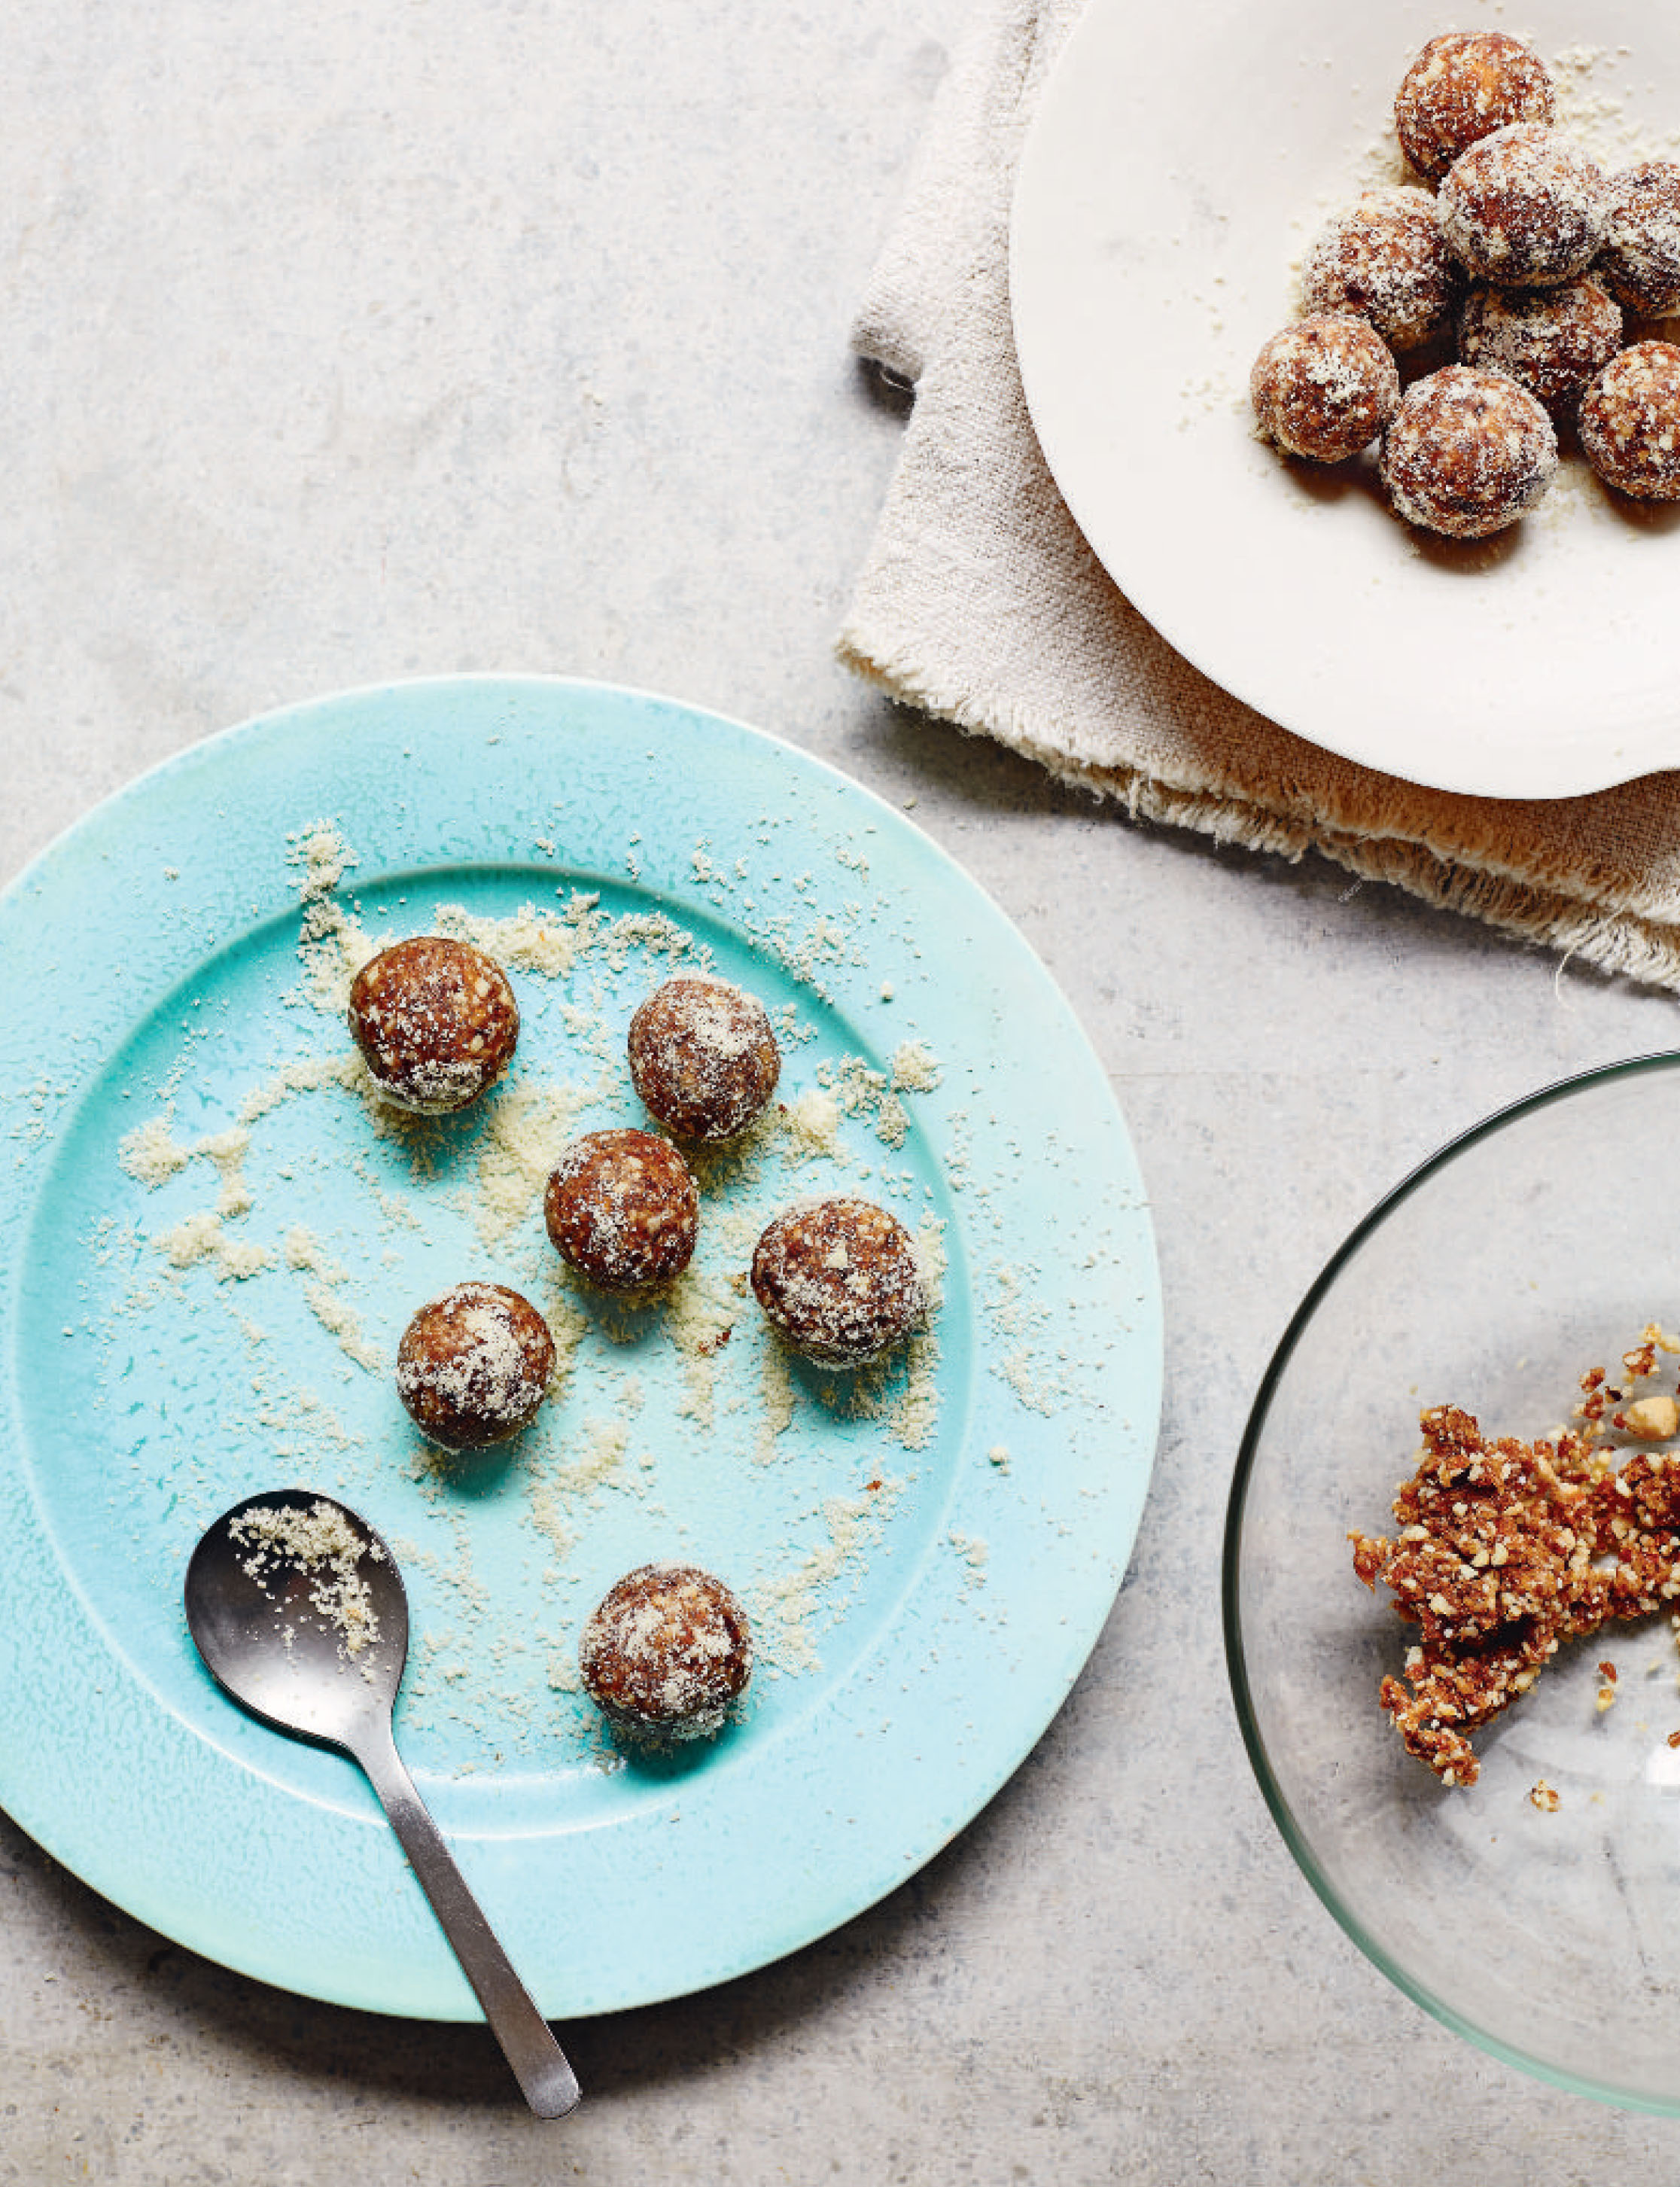 Date, almond and tahini energy balls